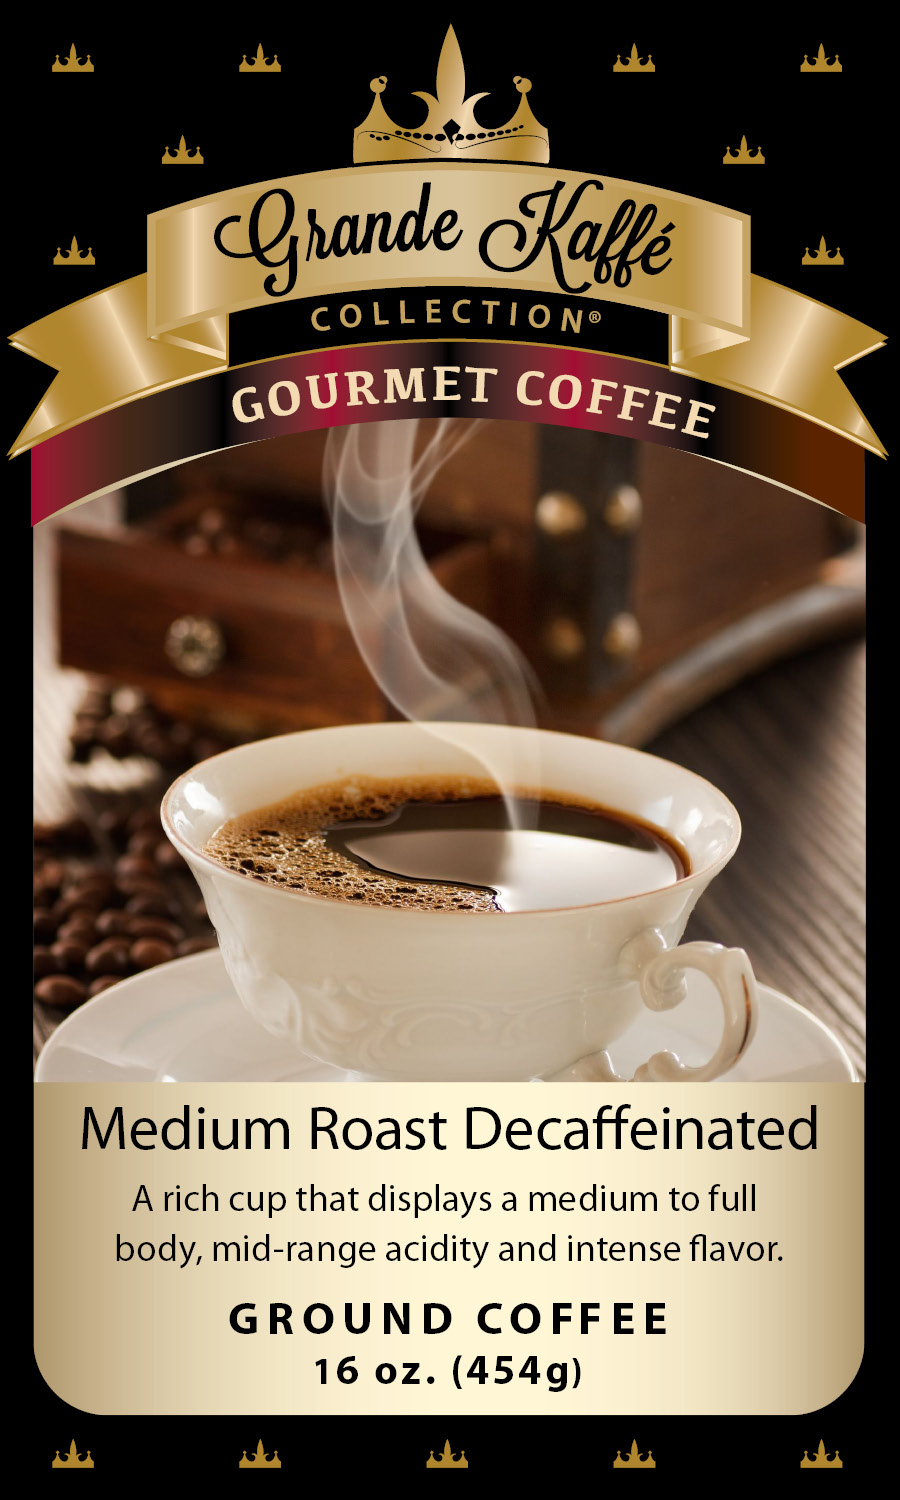 Medium Roast Decaf Coffee